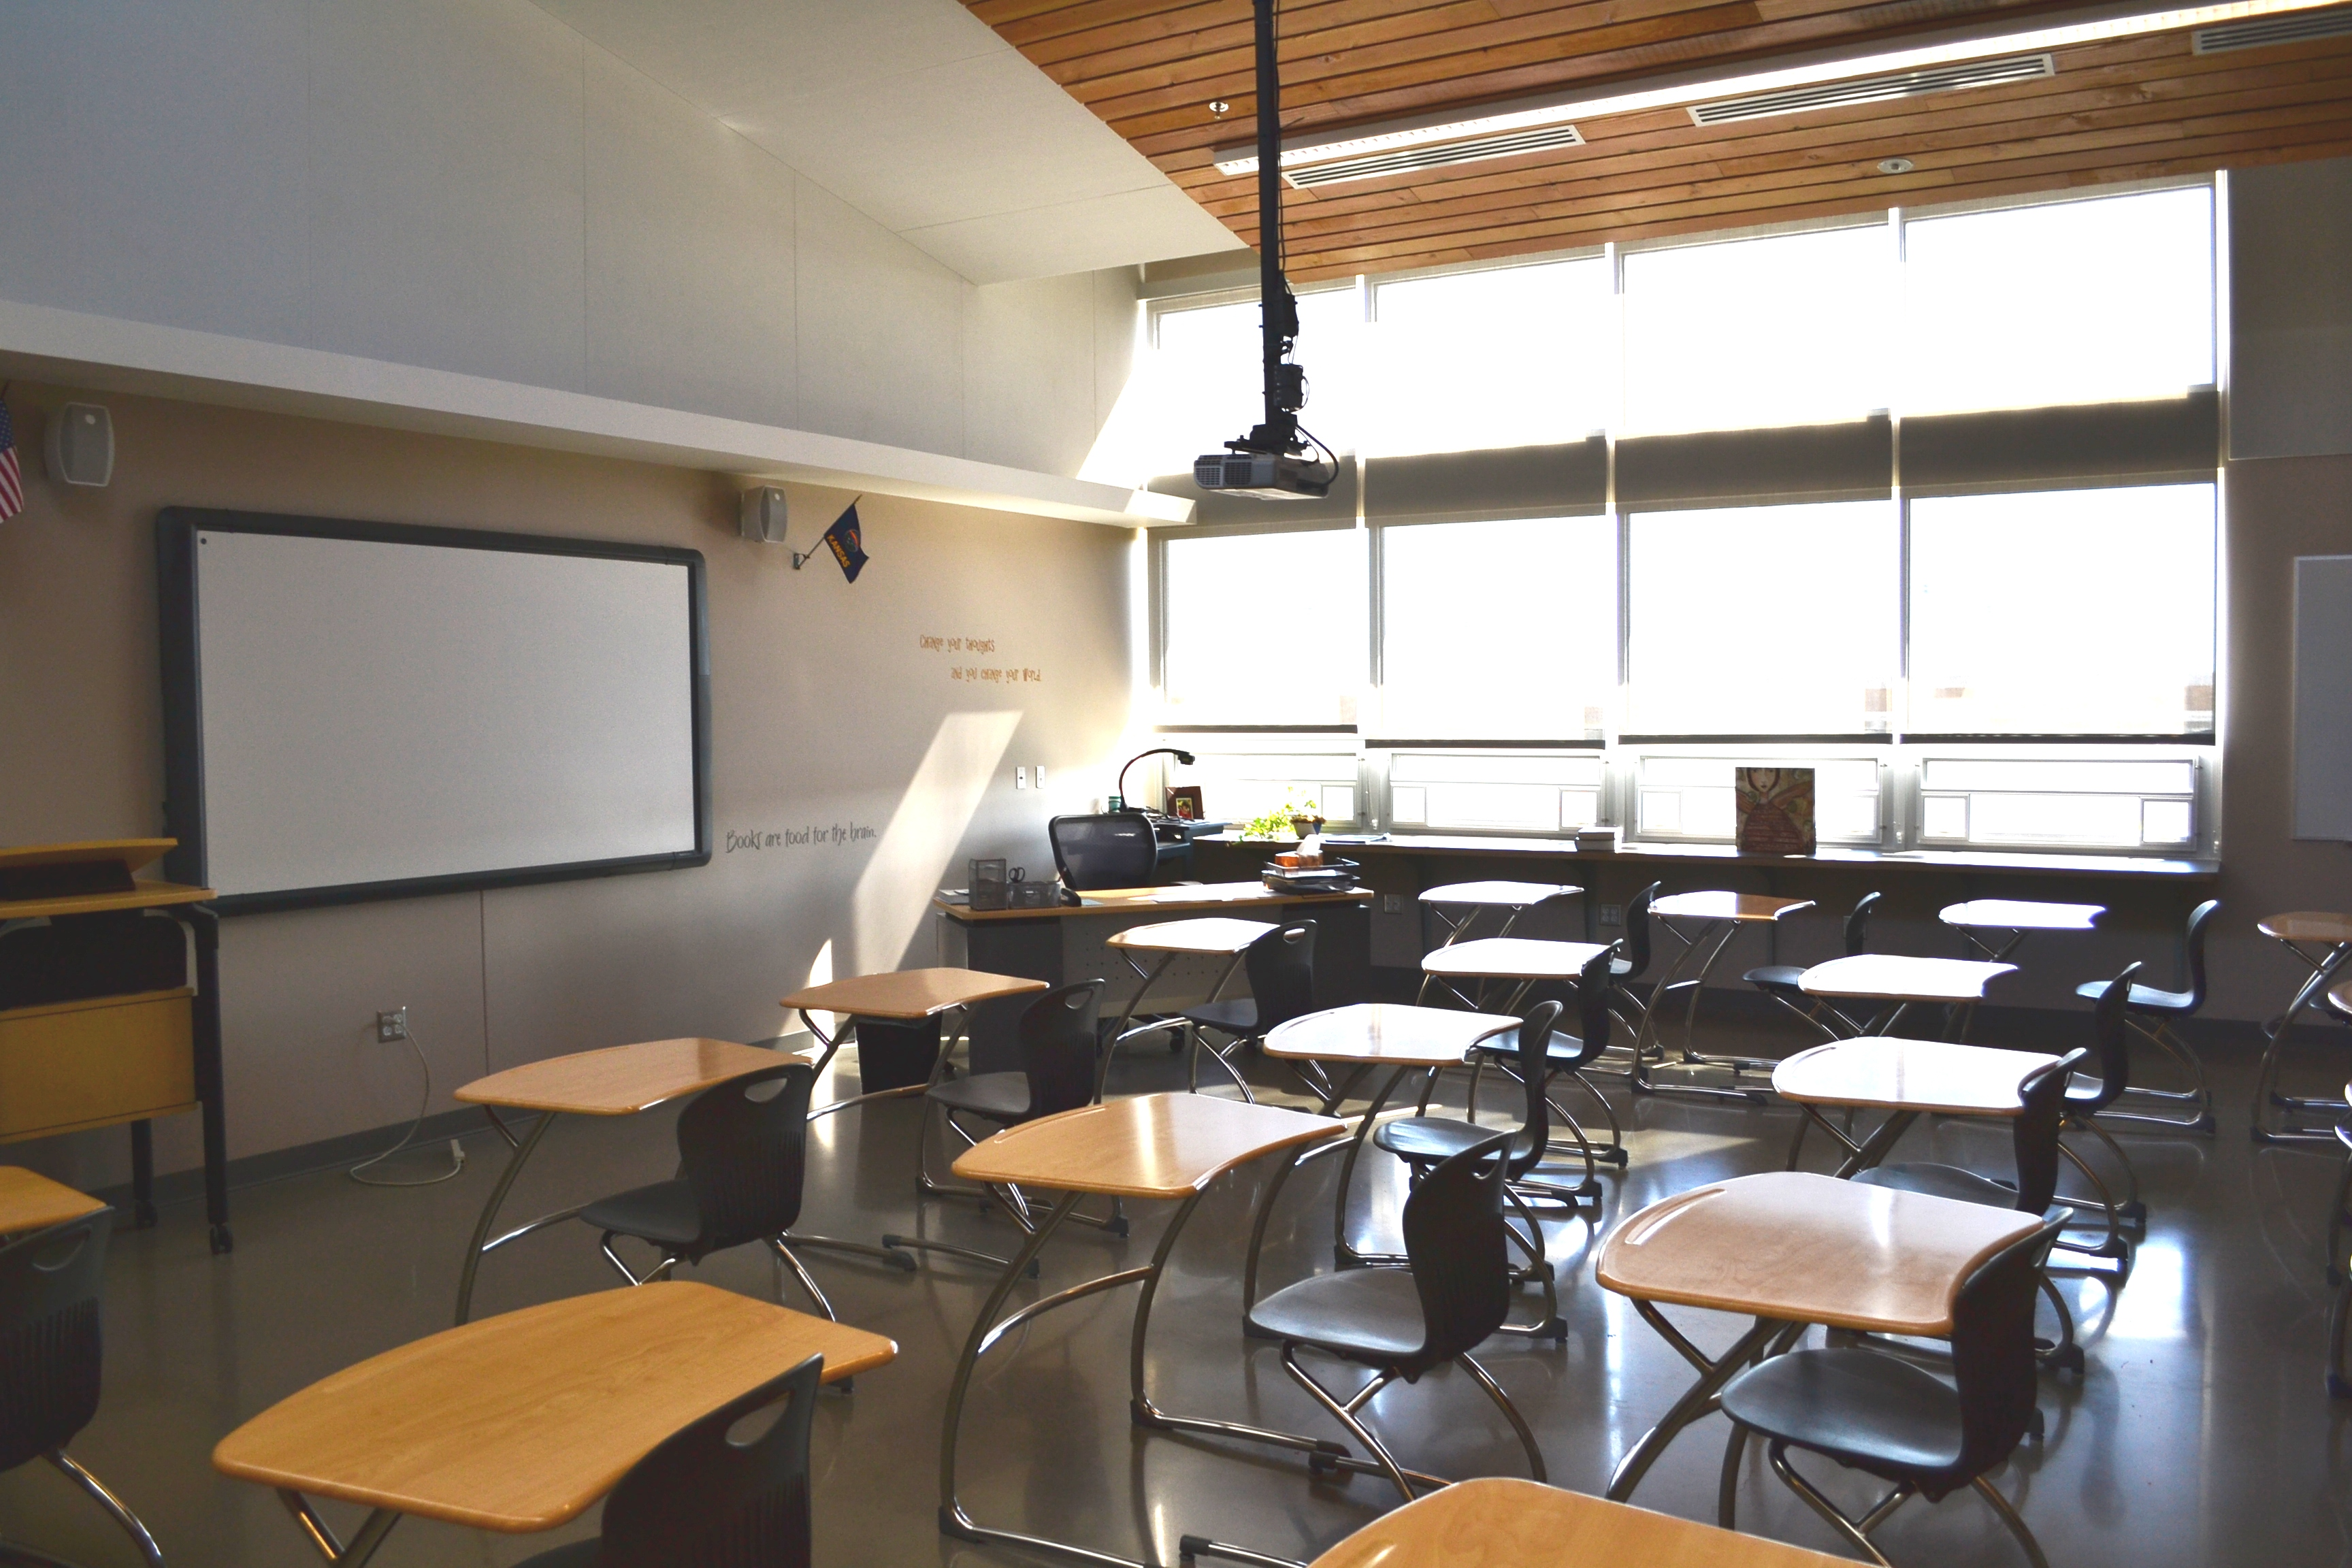 School Classroom Design Guide ~ Designing green schools that advance public health